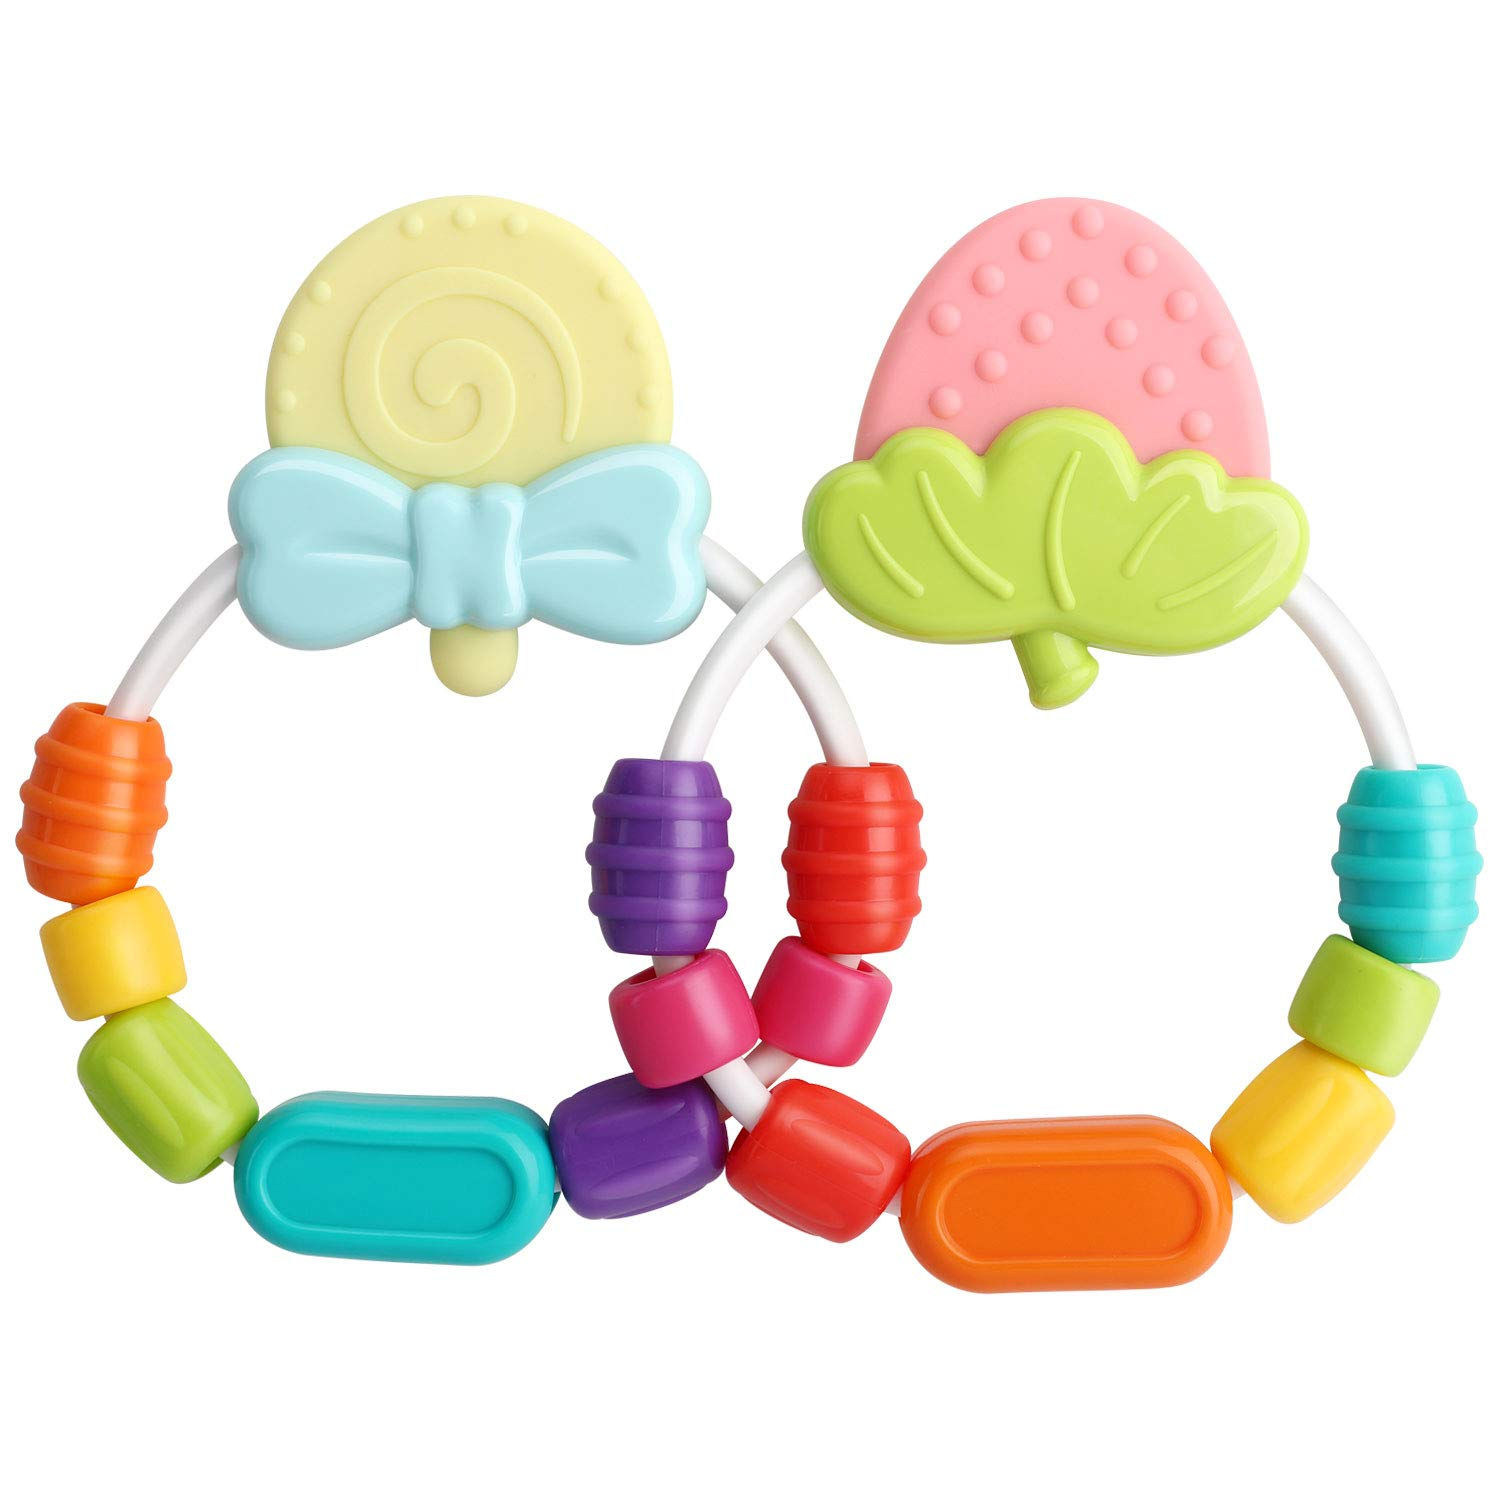 Zooawa Baby Soothing Teether Toy, [2 Pack] Soft and Soothing Rattle Lollipop & Strawberry Teething Toy, Easy to Hold, for 3-18 Month Infants